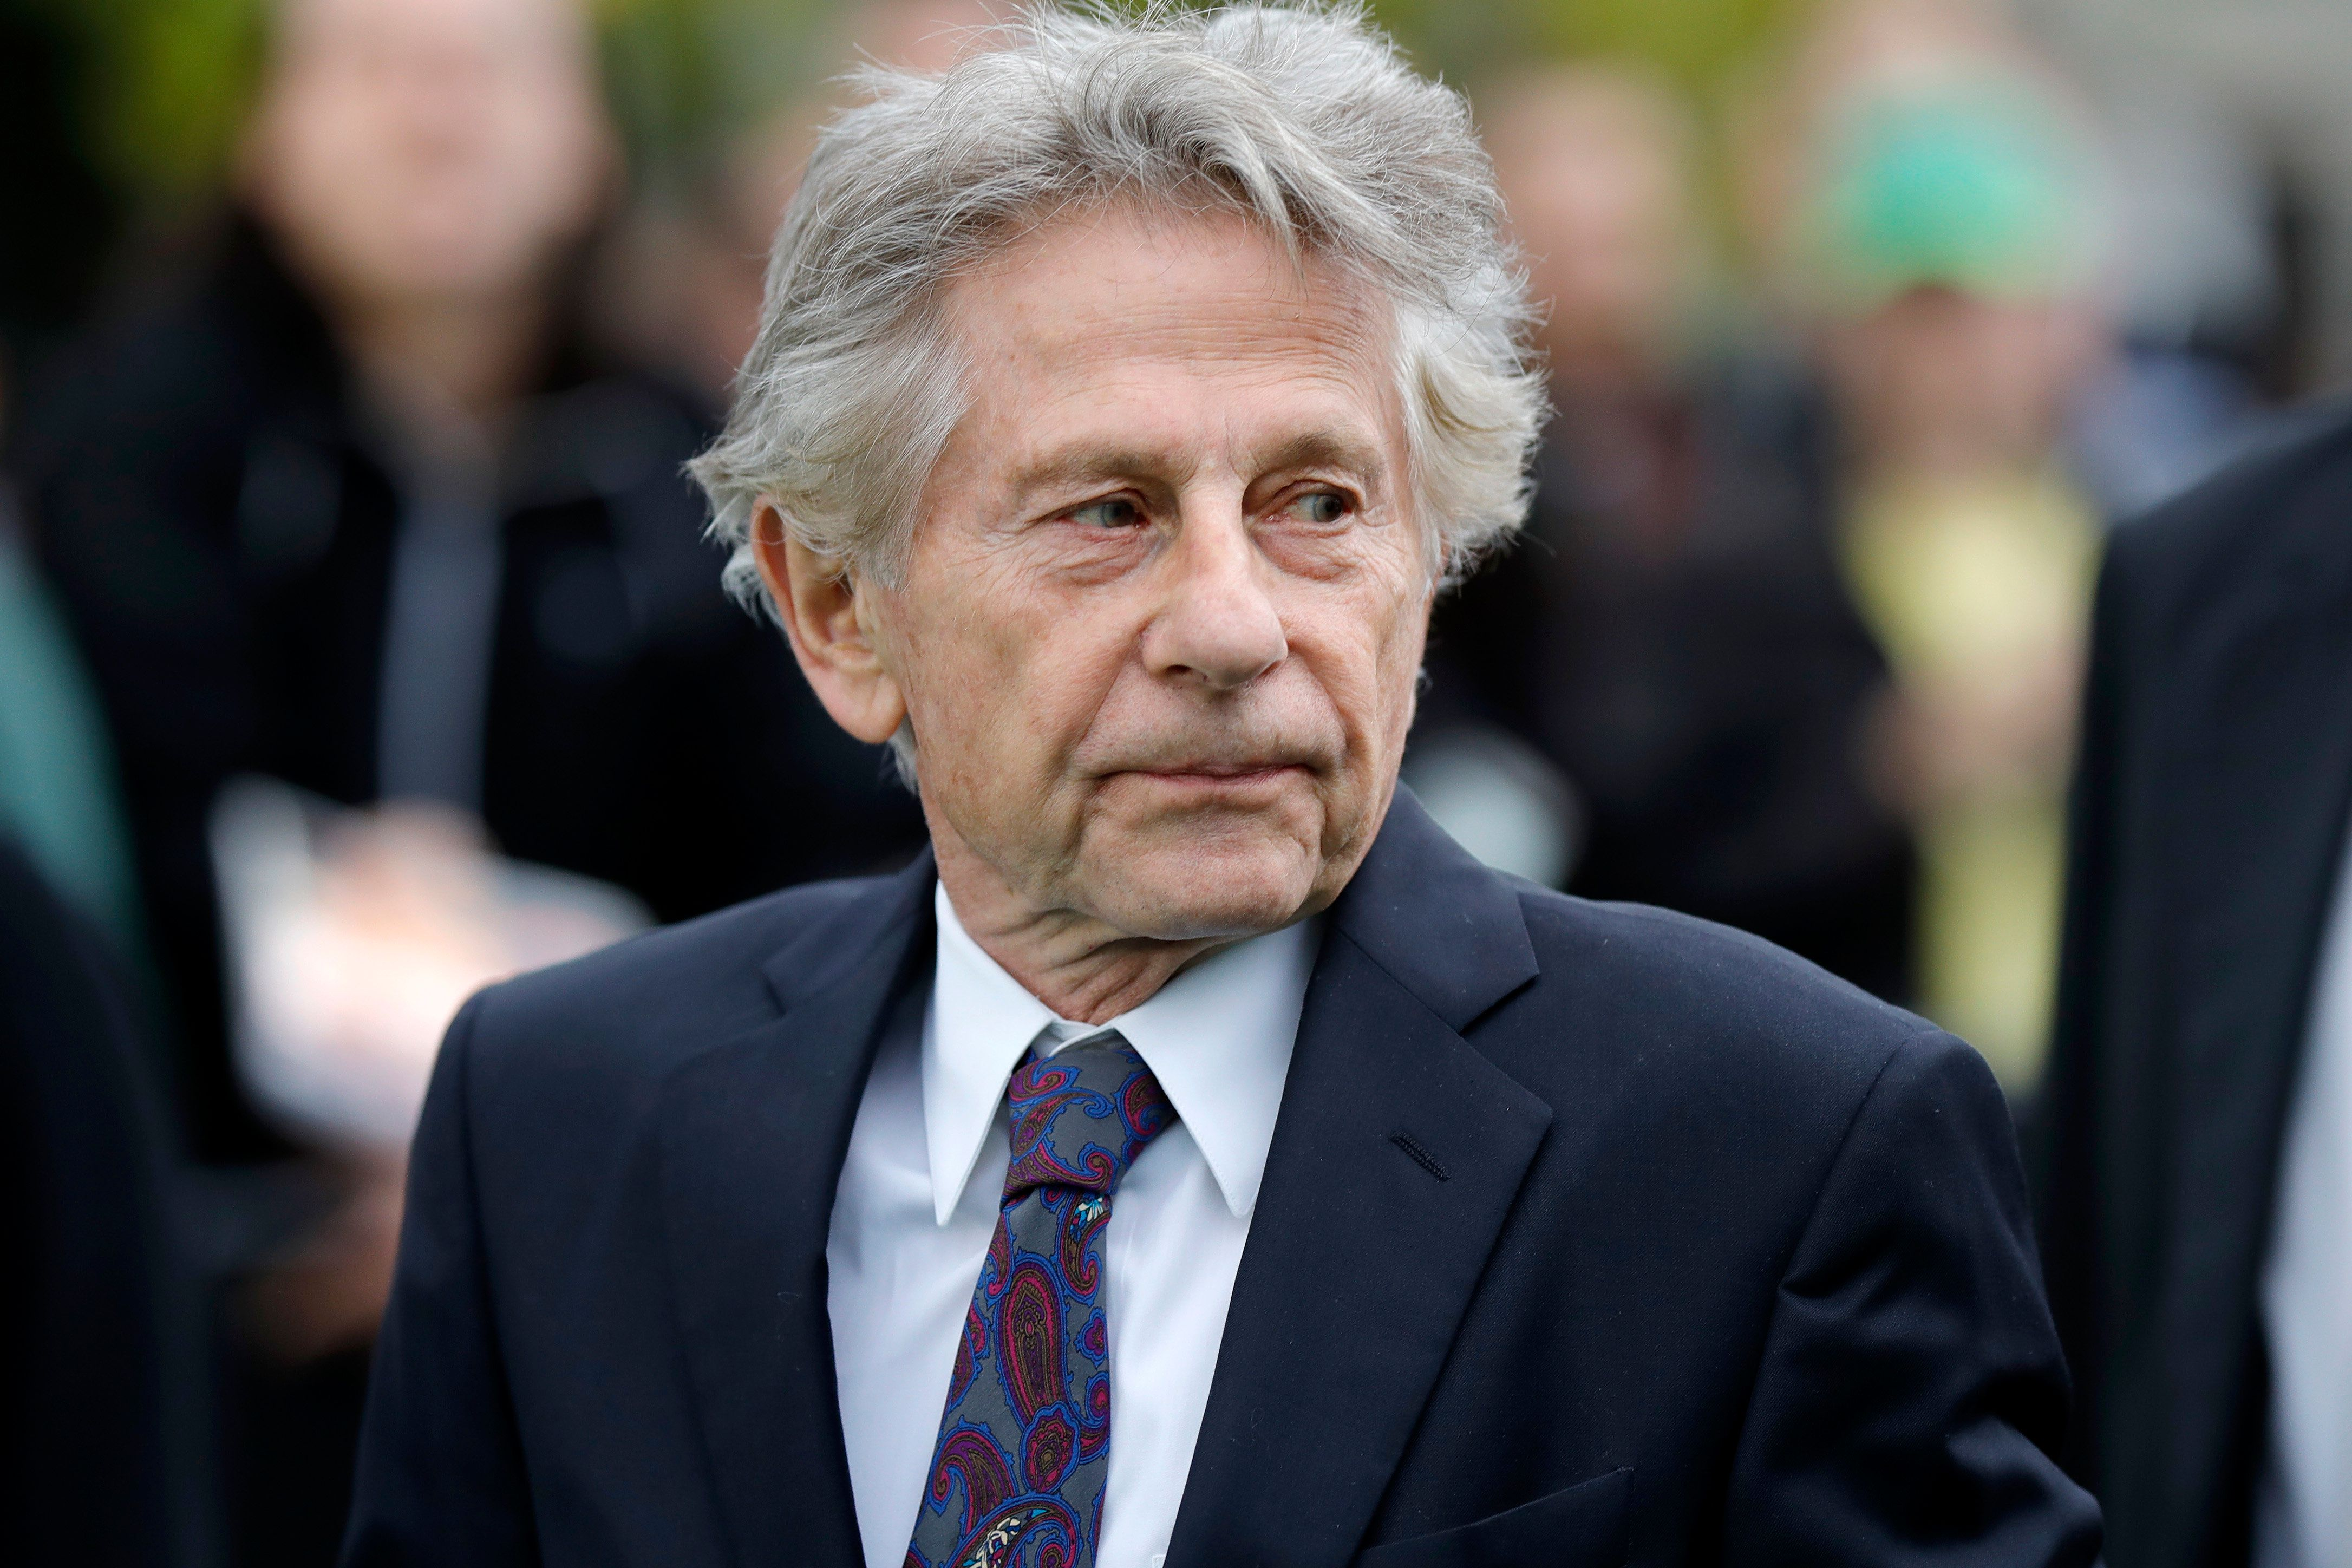 ZURICH, SWITZERLAND - OCTOBER 02:  Roman Polanski attends the 'D'apres une histoire vraie' premiere at the 13th Zurich Film Festival on October 2, 2017 in Zurich, Switzerland. The Zurich Film Festival 2017 will take place from September 28 until October 8.  (Photo by Andreas Rentz/Getty Images)